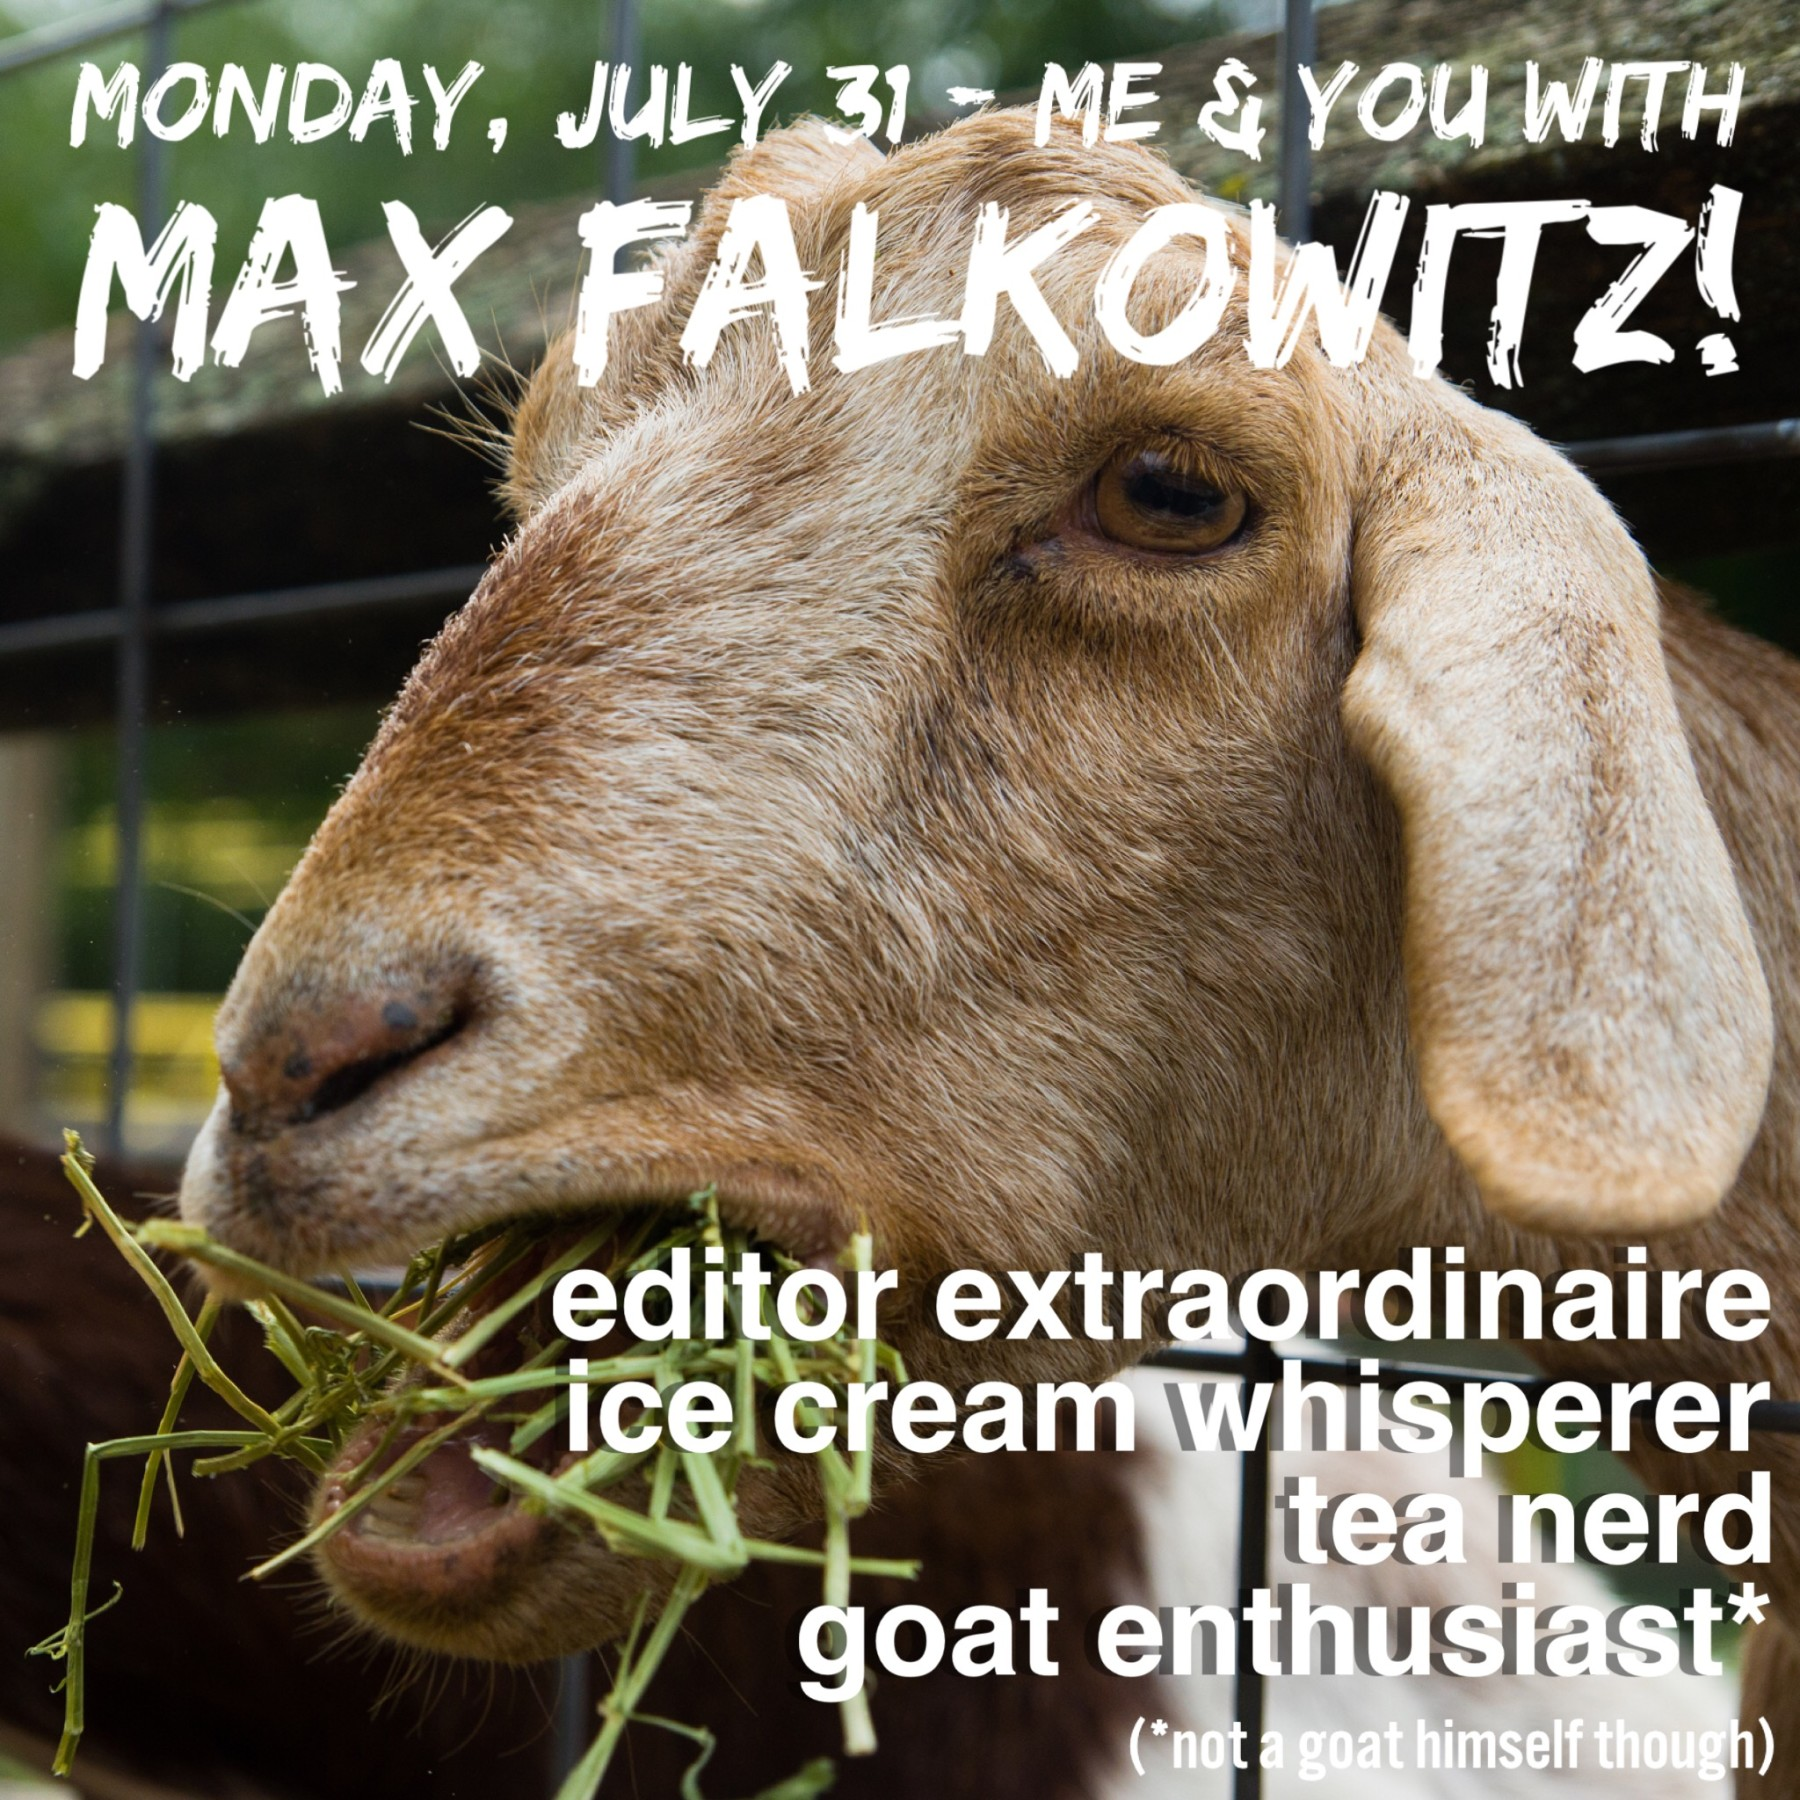 Max Falkowitz Goat photo - USE THIS